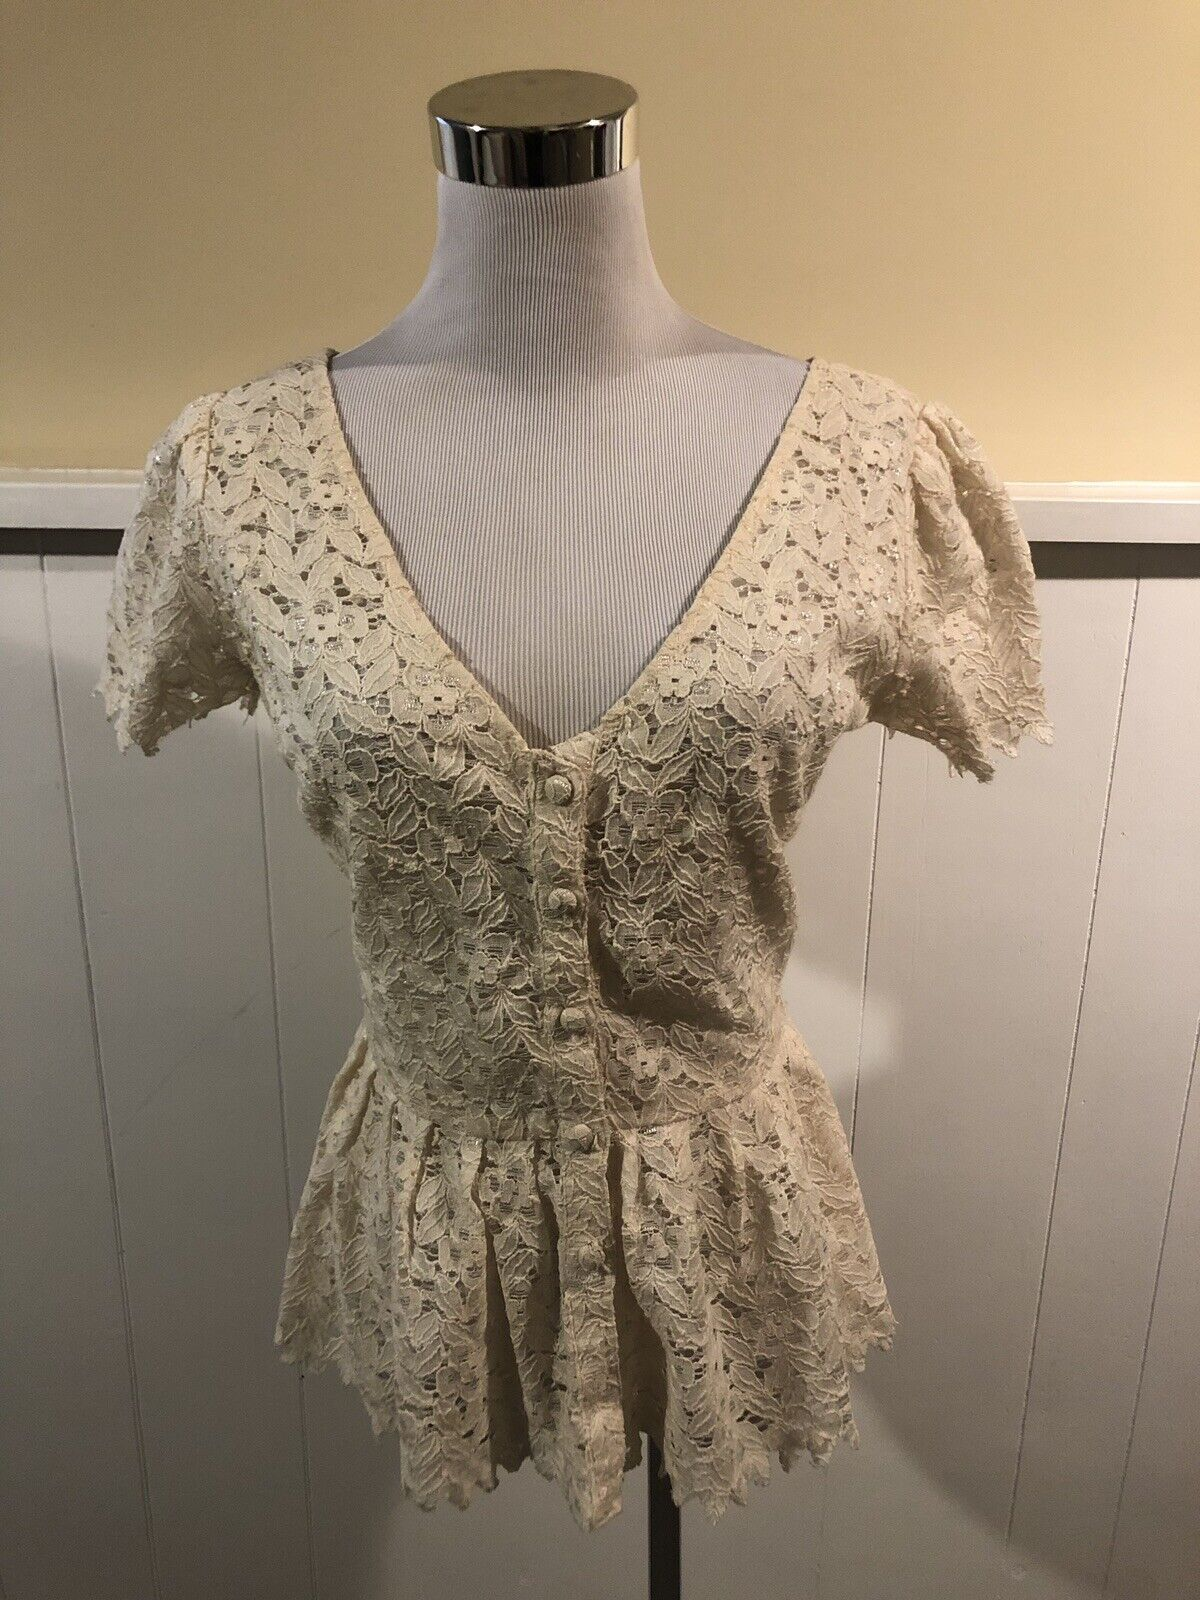 Anthropologie Two Of Us Eyelet Lace Peplum Top Size 6